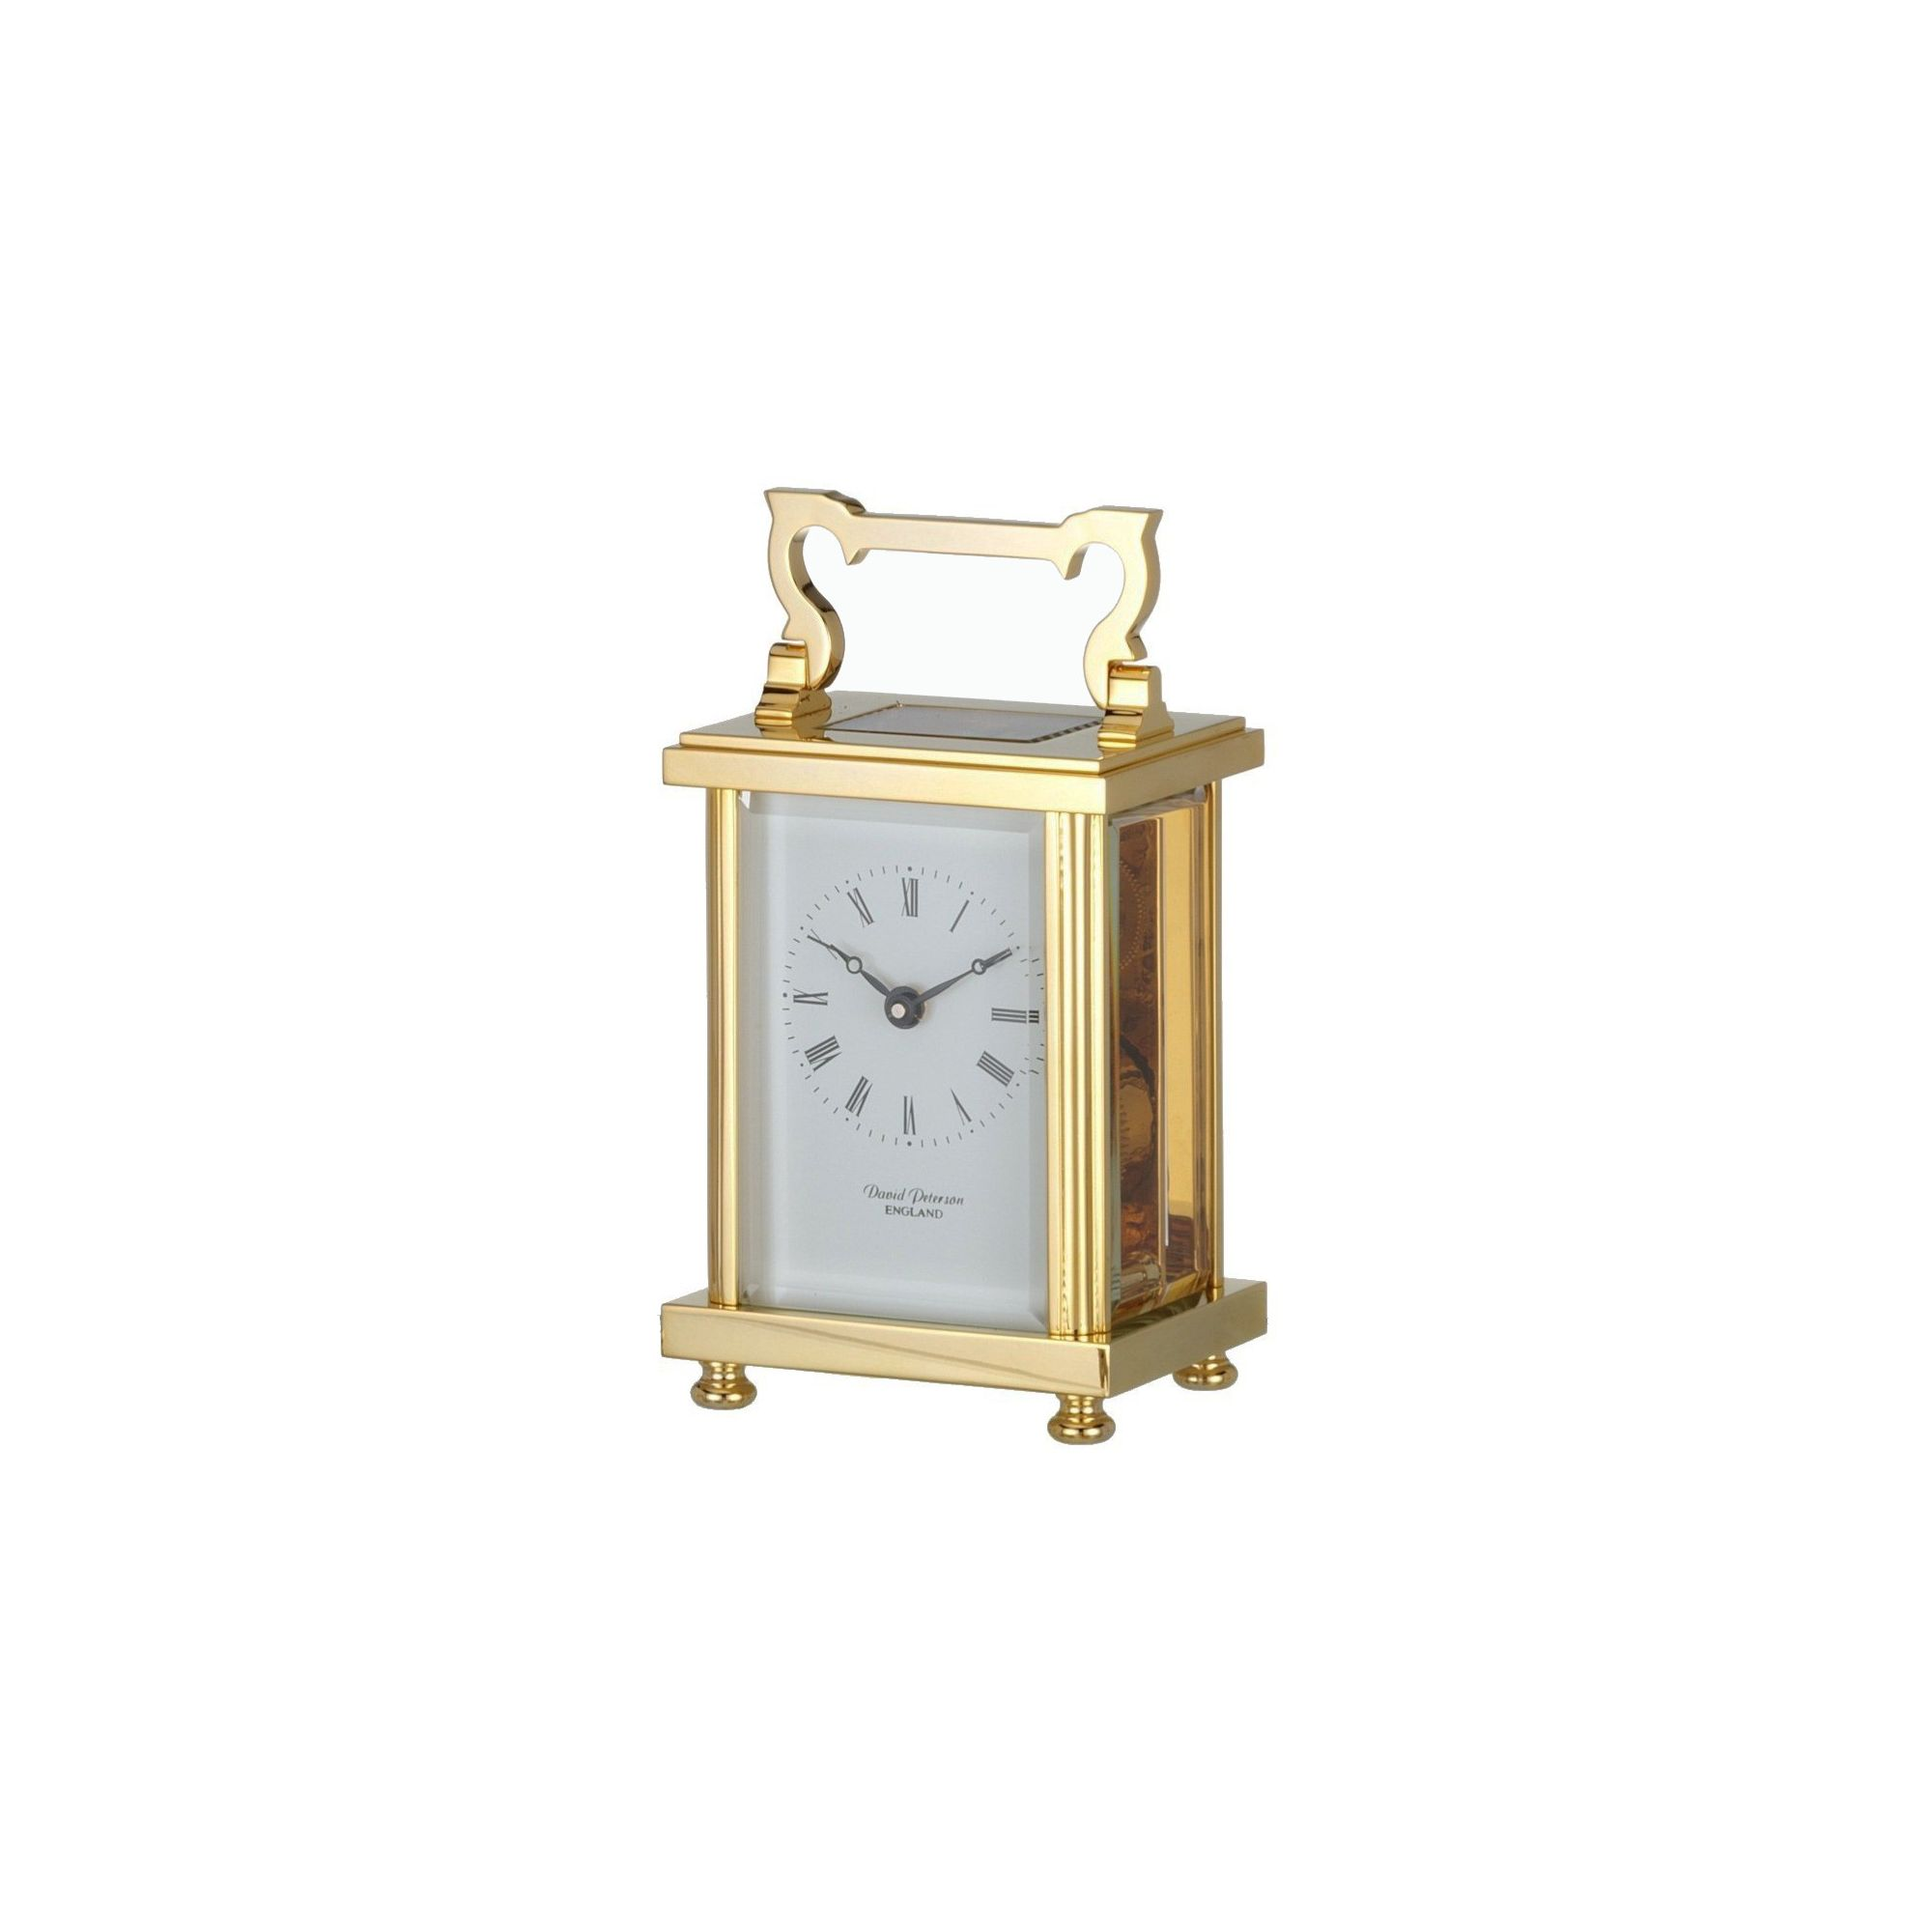 David Peterson Ltd 8 Day Heavy Flat Carriage Clock at Tescos Direct